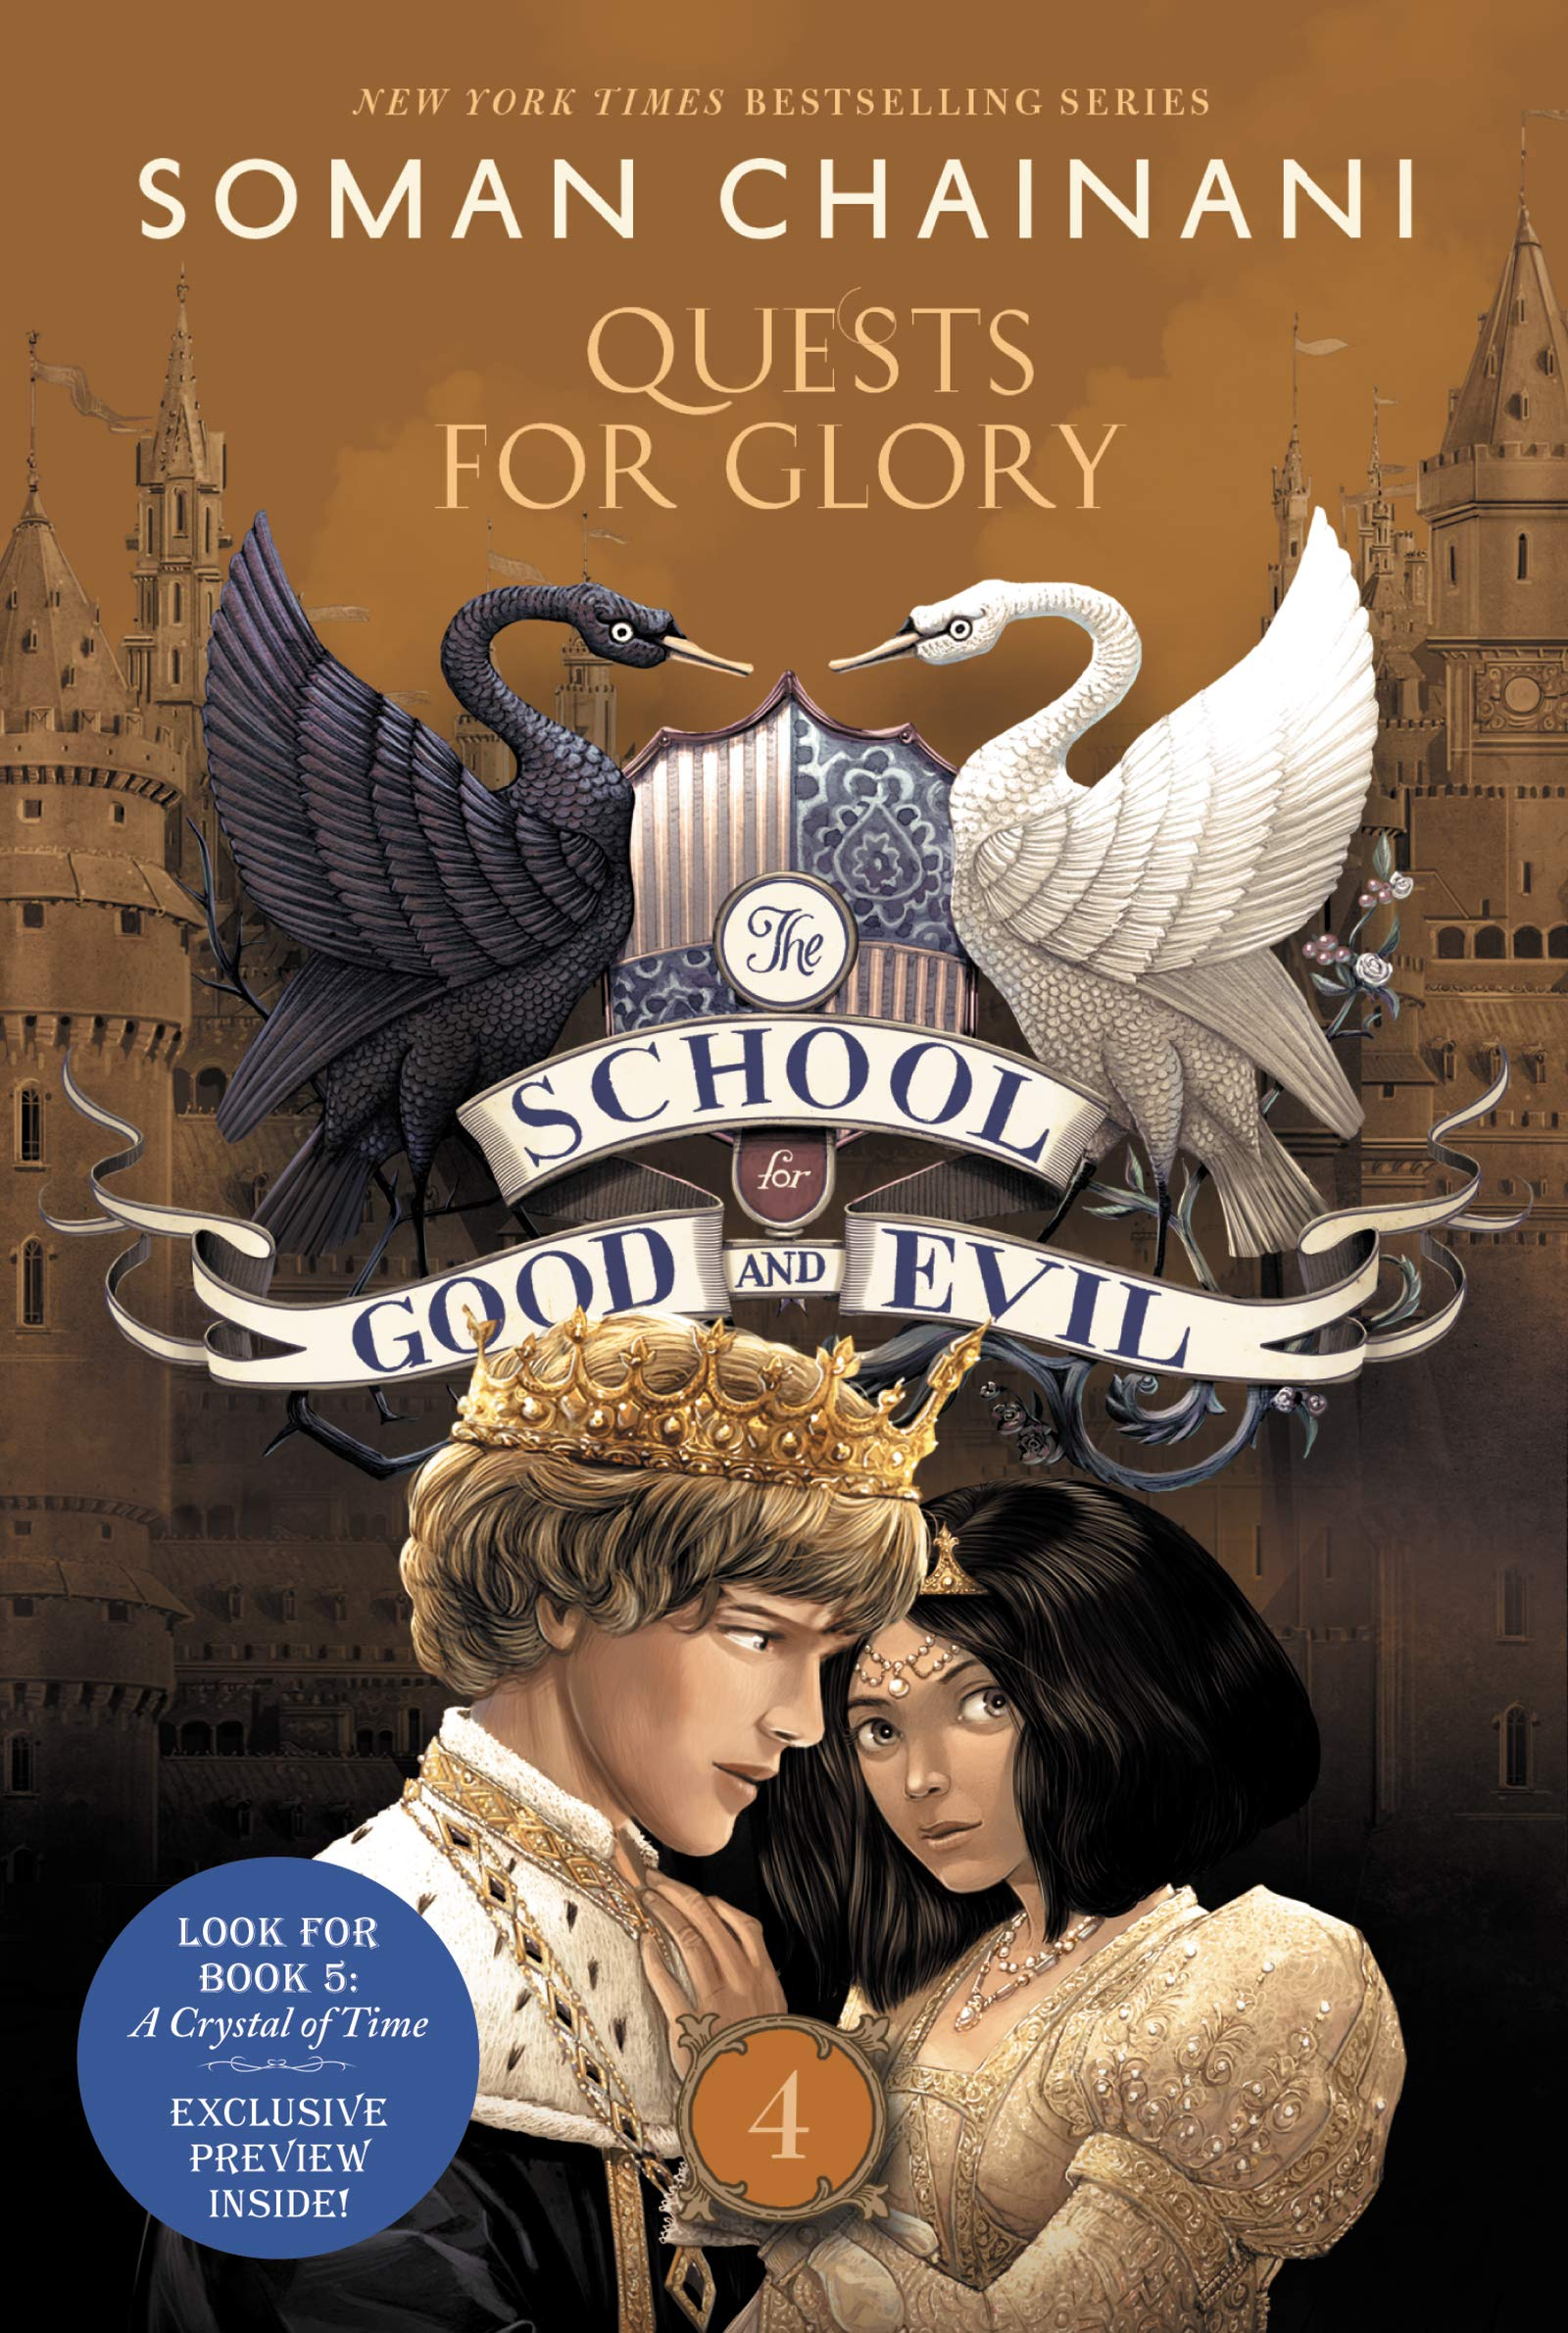 School Good Evil Quests Glory product image